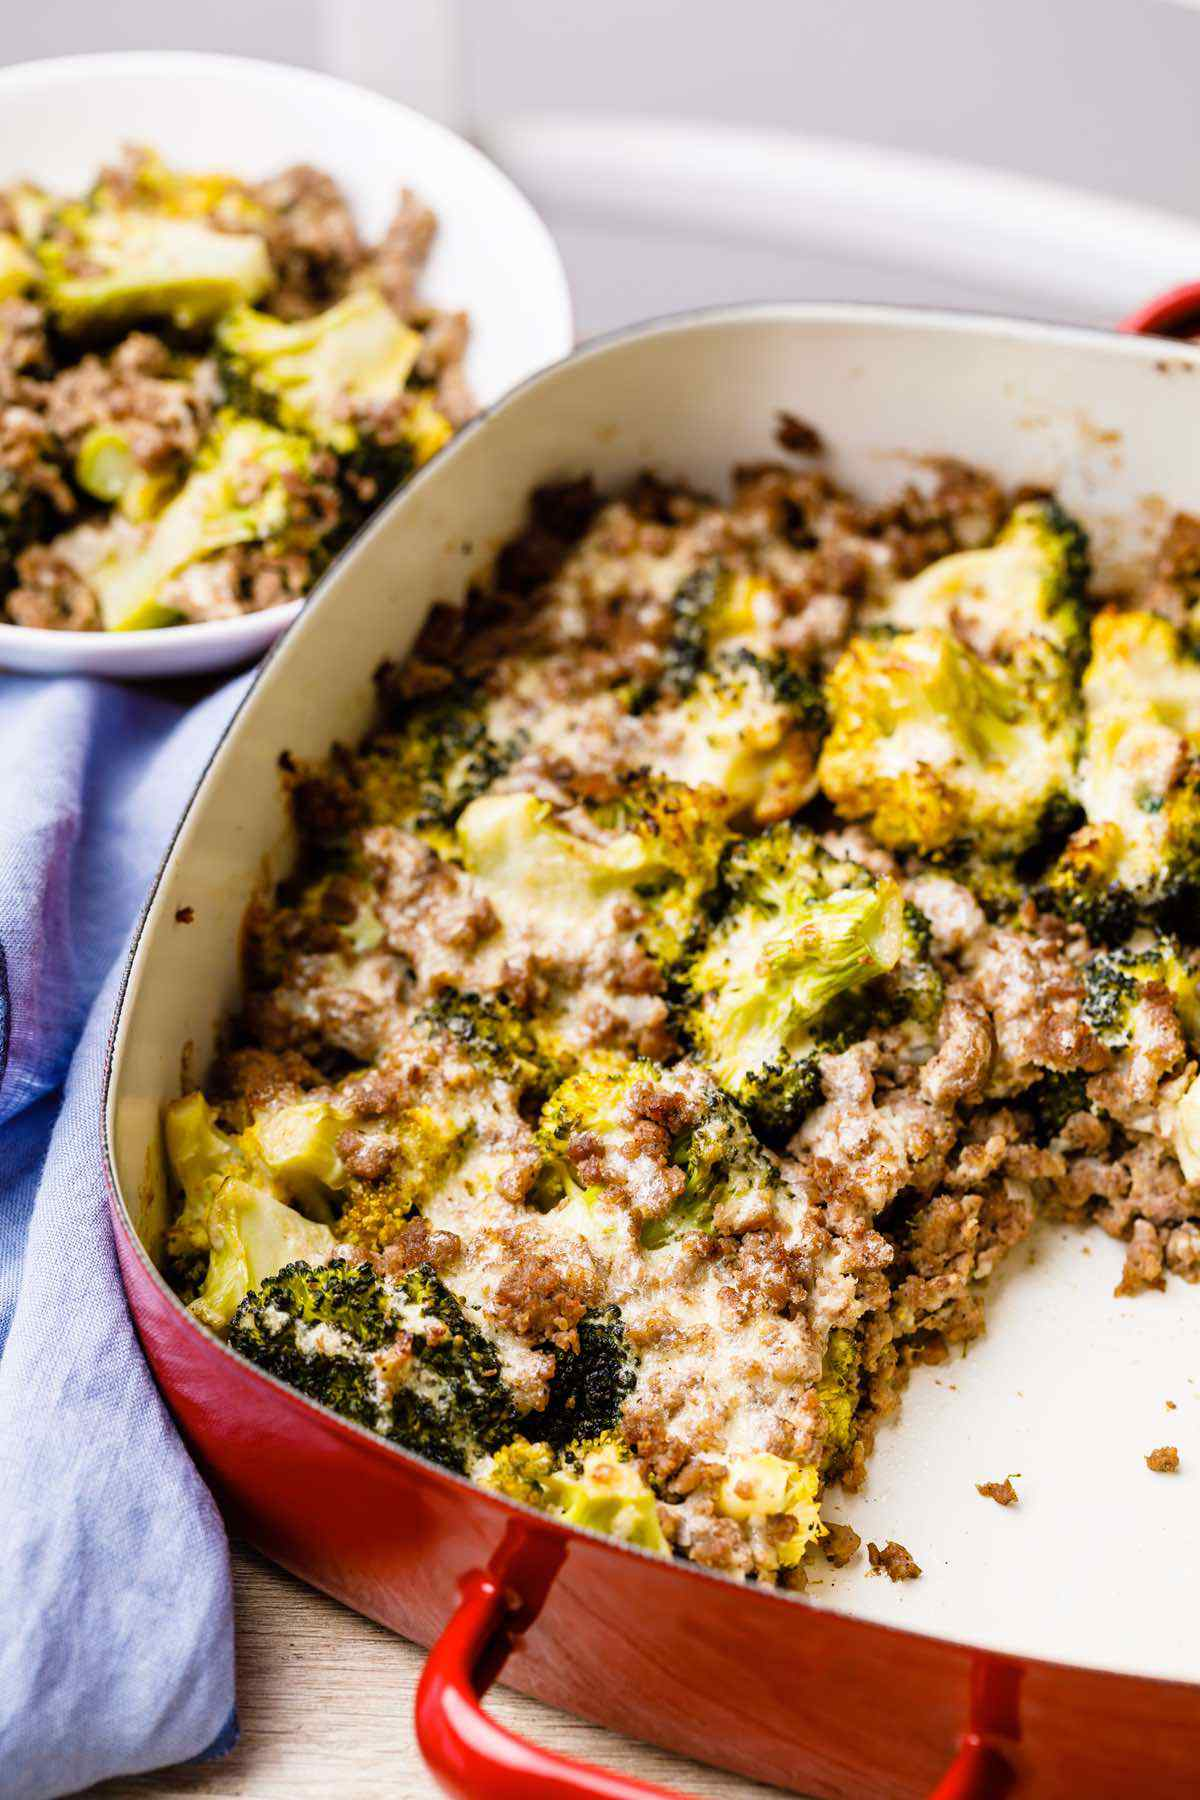 Paleo Broccoli Ground Beef Casserole